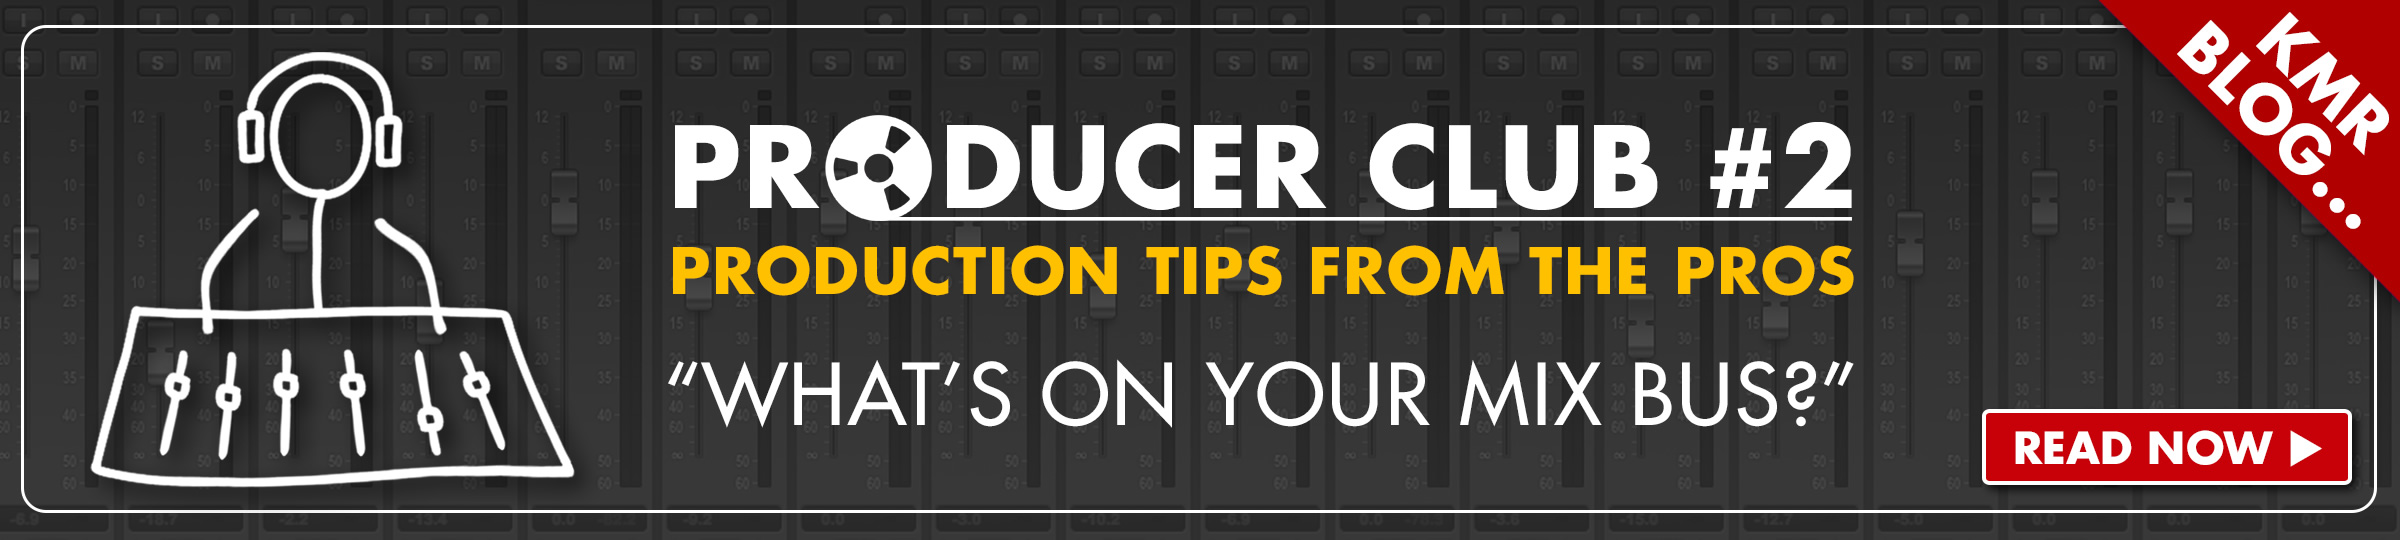 Producer Club 2 - What's On Your Mix Bus